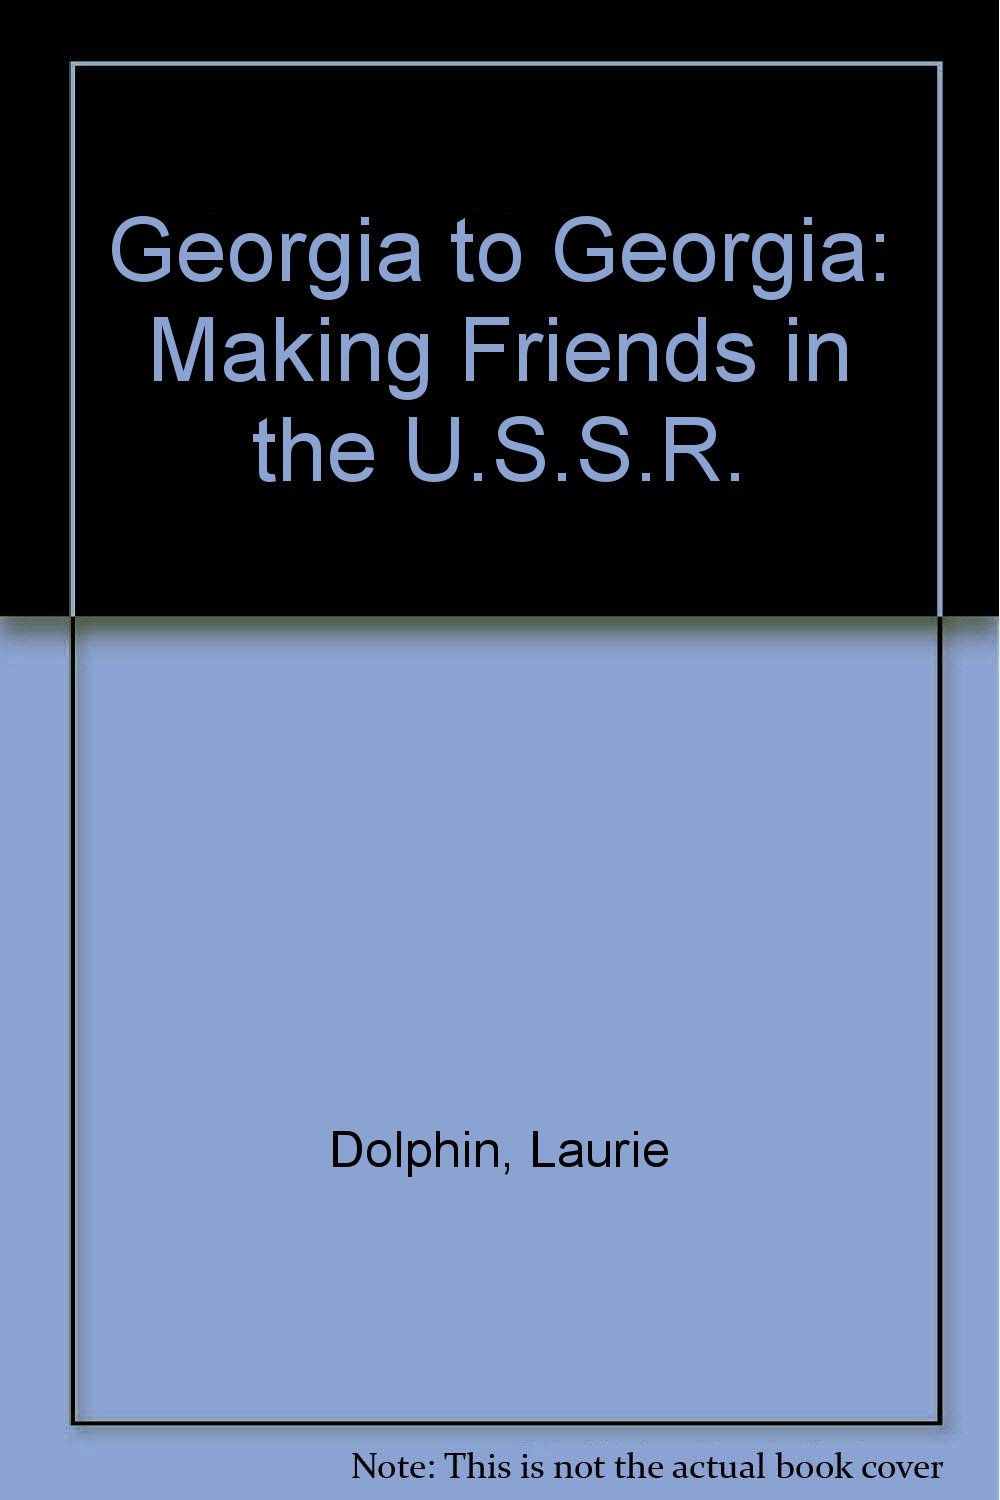 Georgia to Georgia: Making Friends in the U.S.S.R. Hardcover – April 1, 1991 Laurie Dolphin Tambourine 0688098967 General